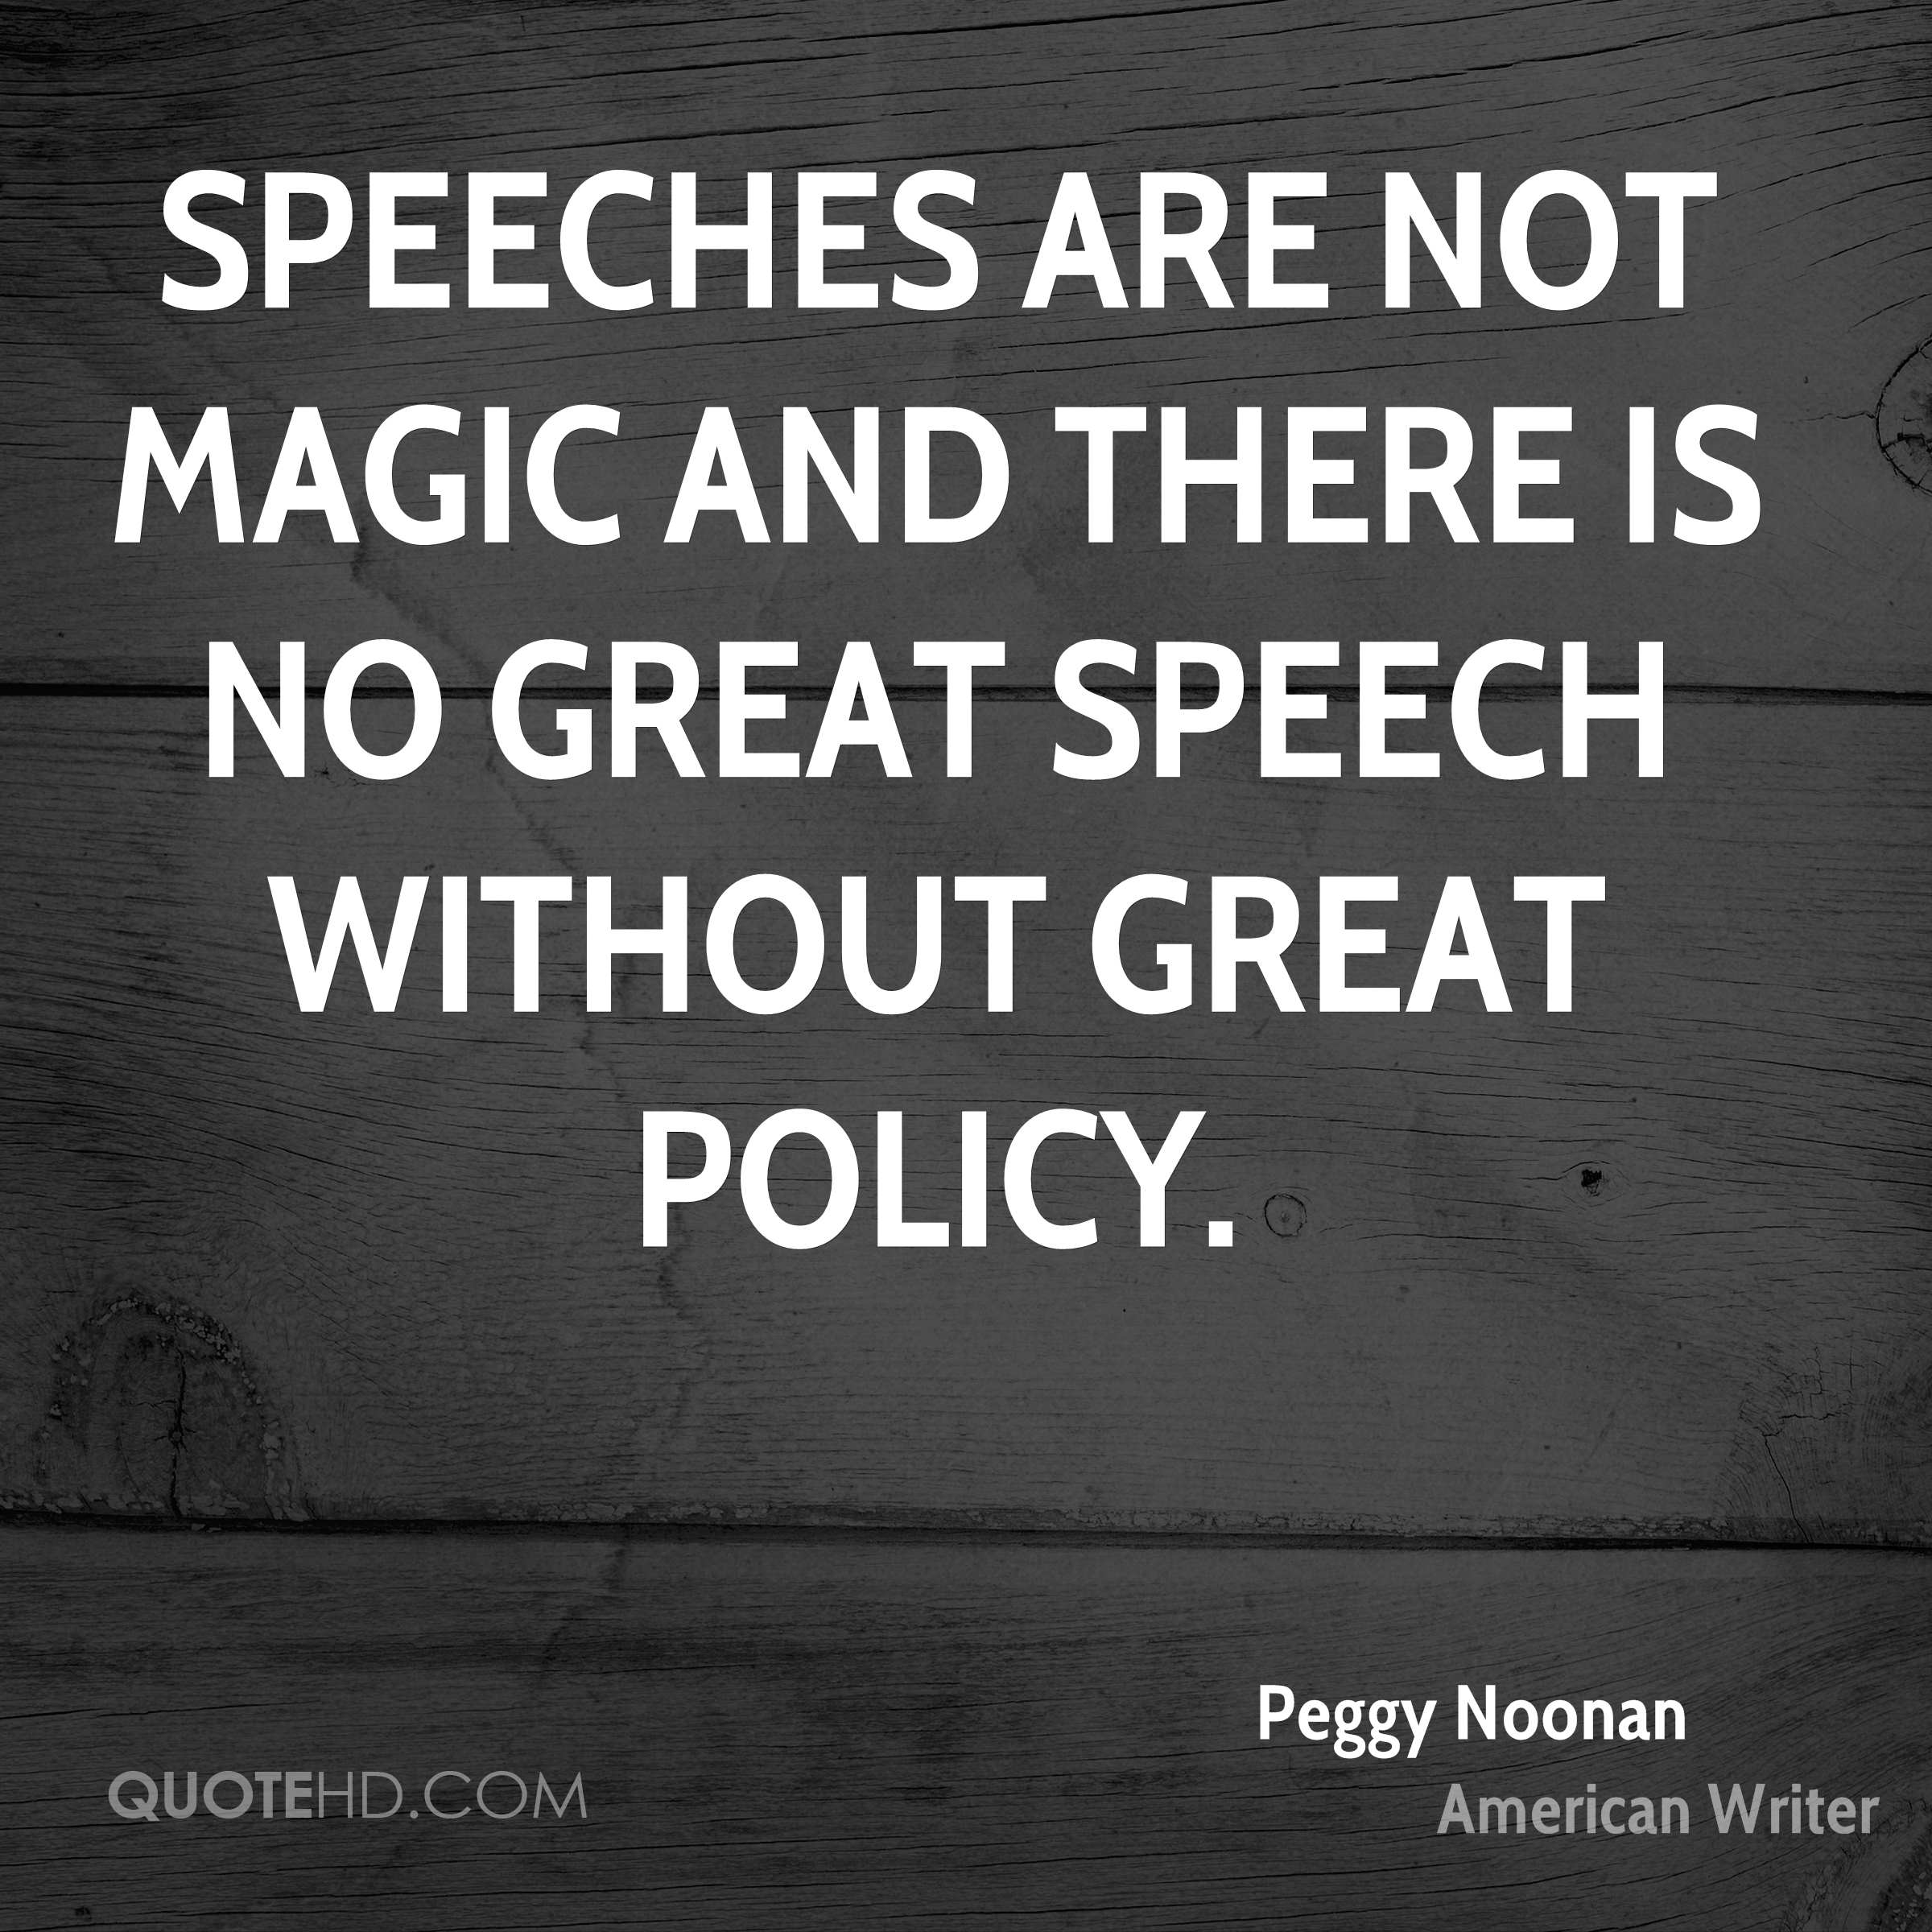 Speeches are not magic and there is no great speech without great policy.